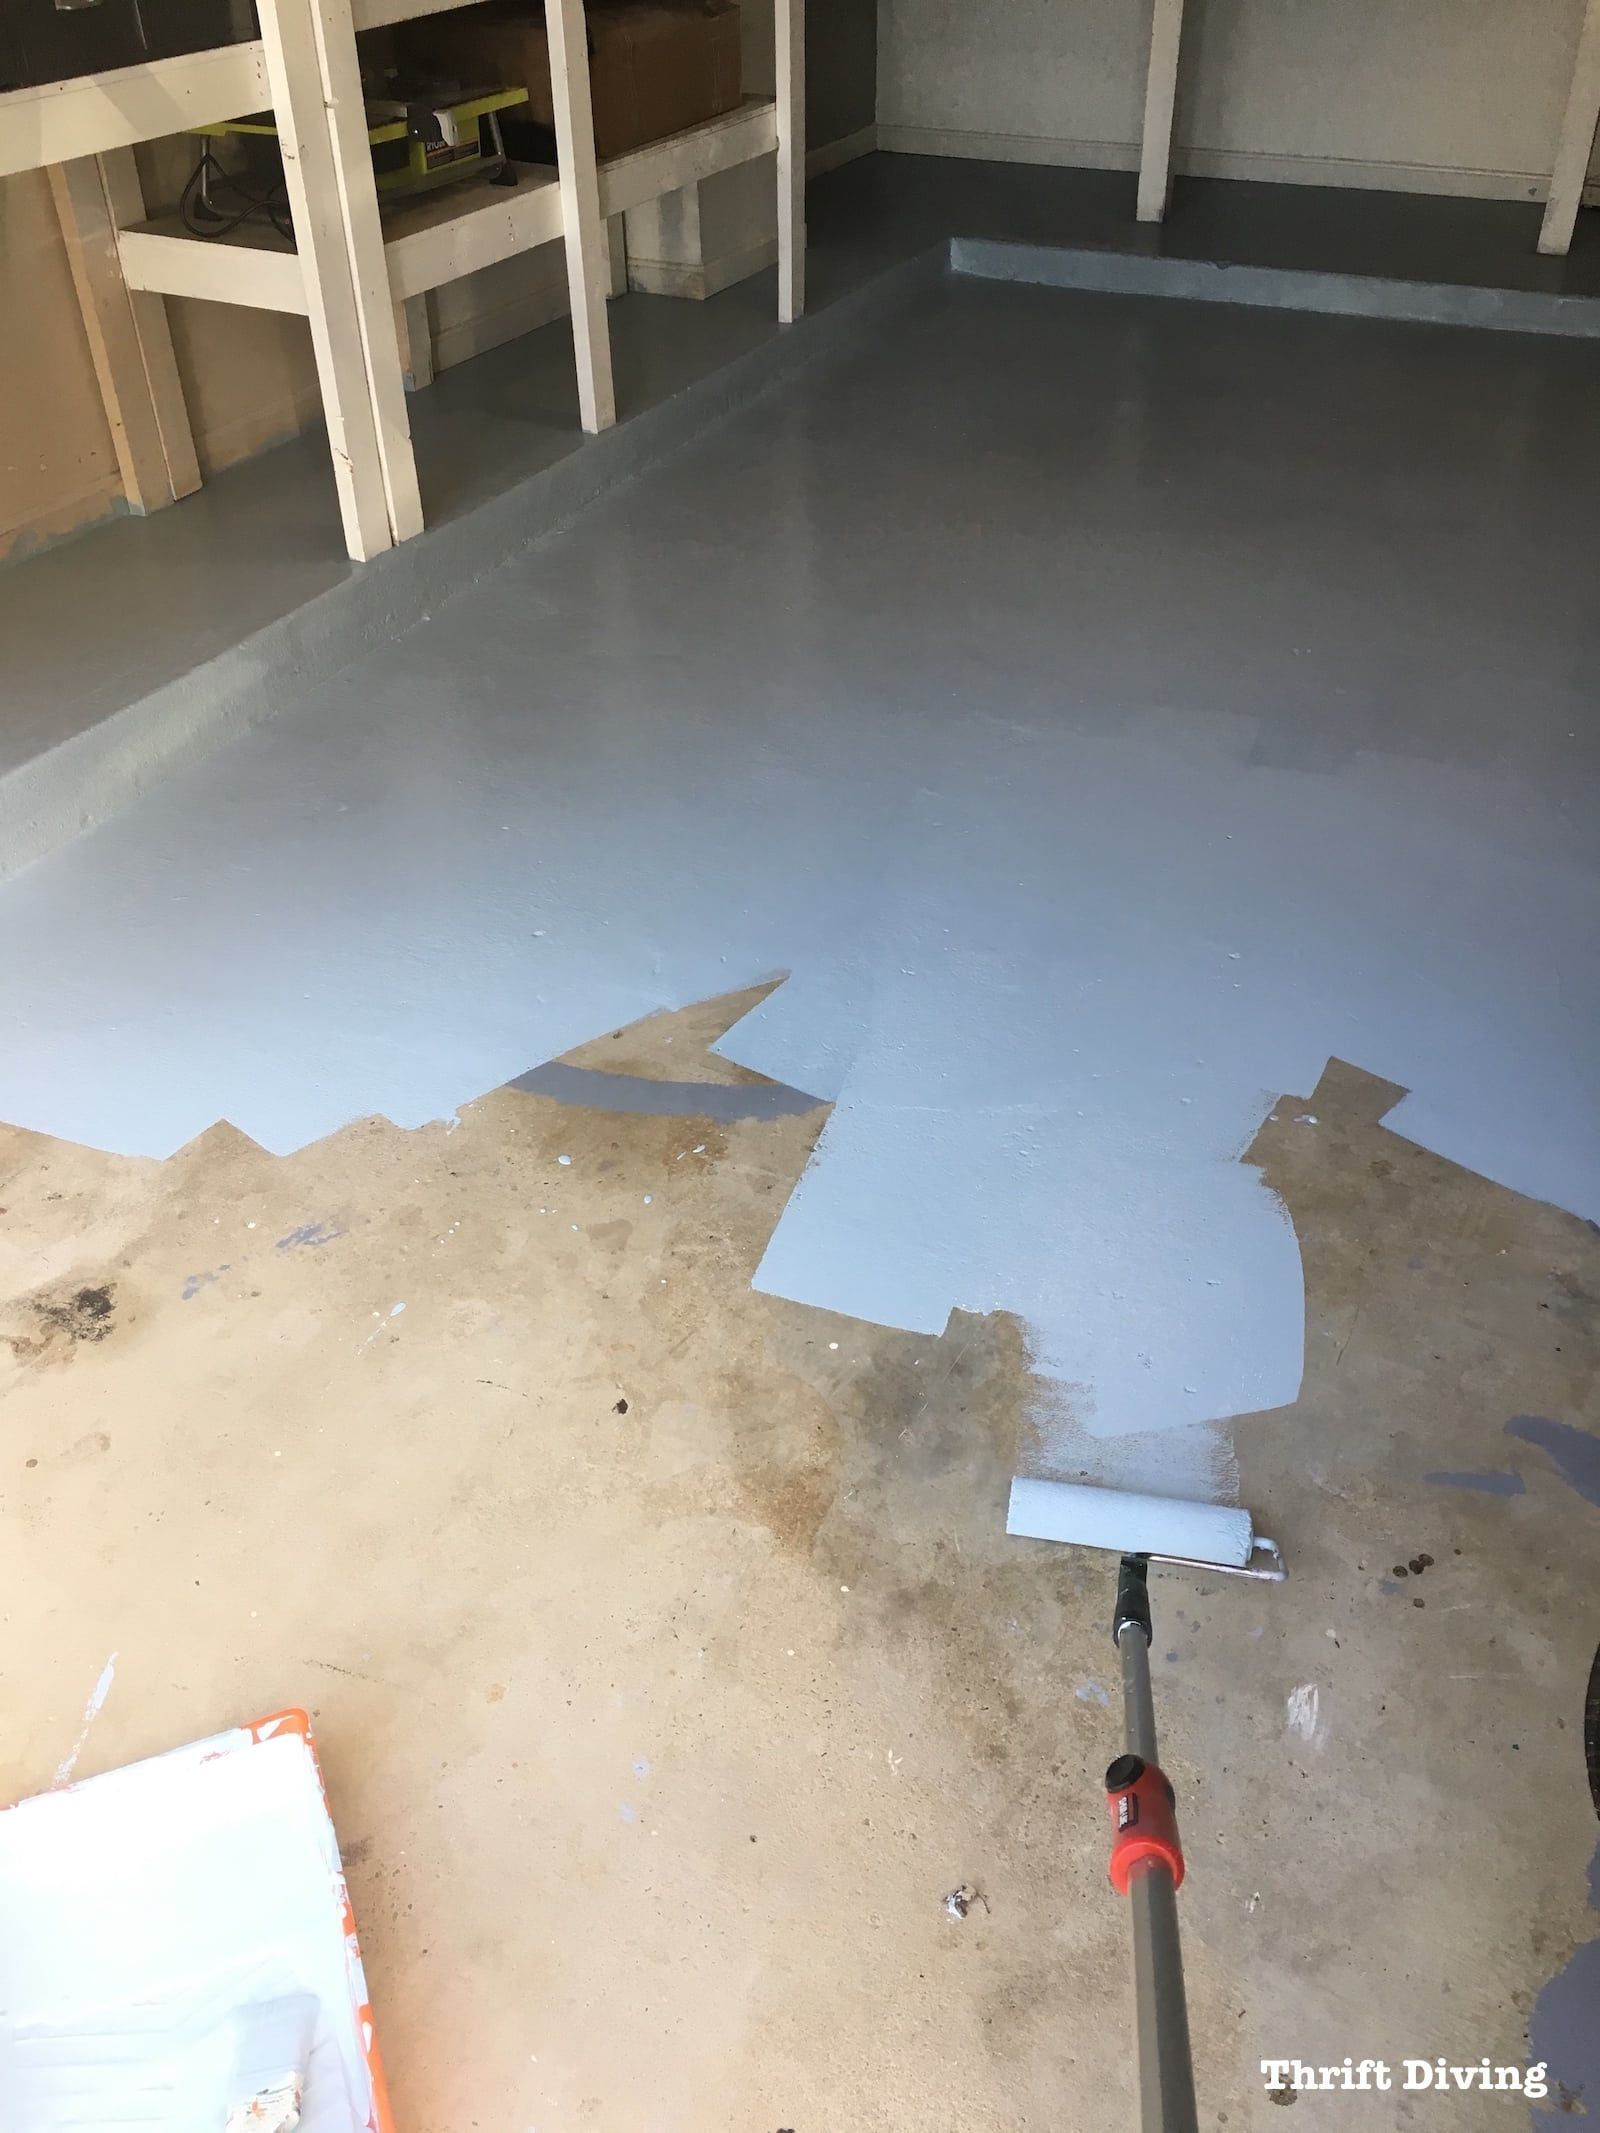 Transform a dull garage floor into a brilliantly colored